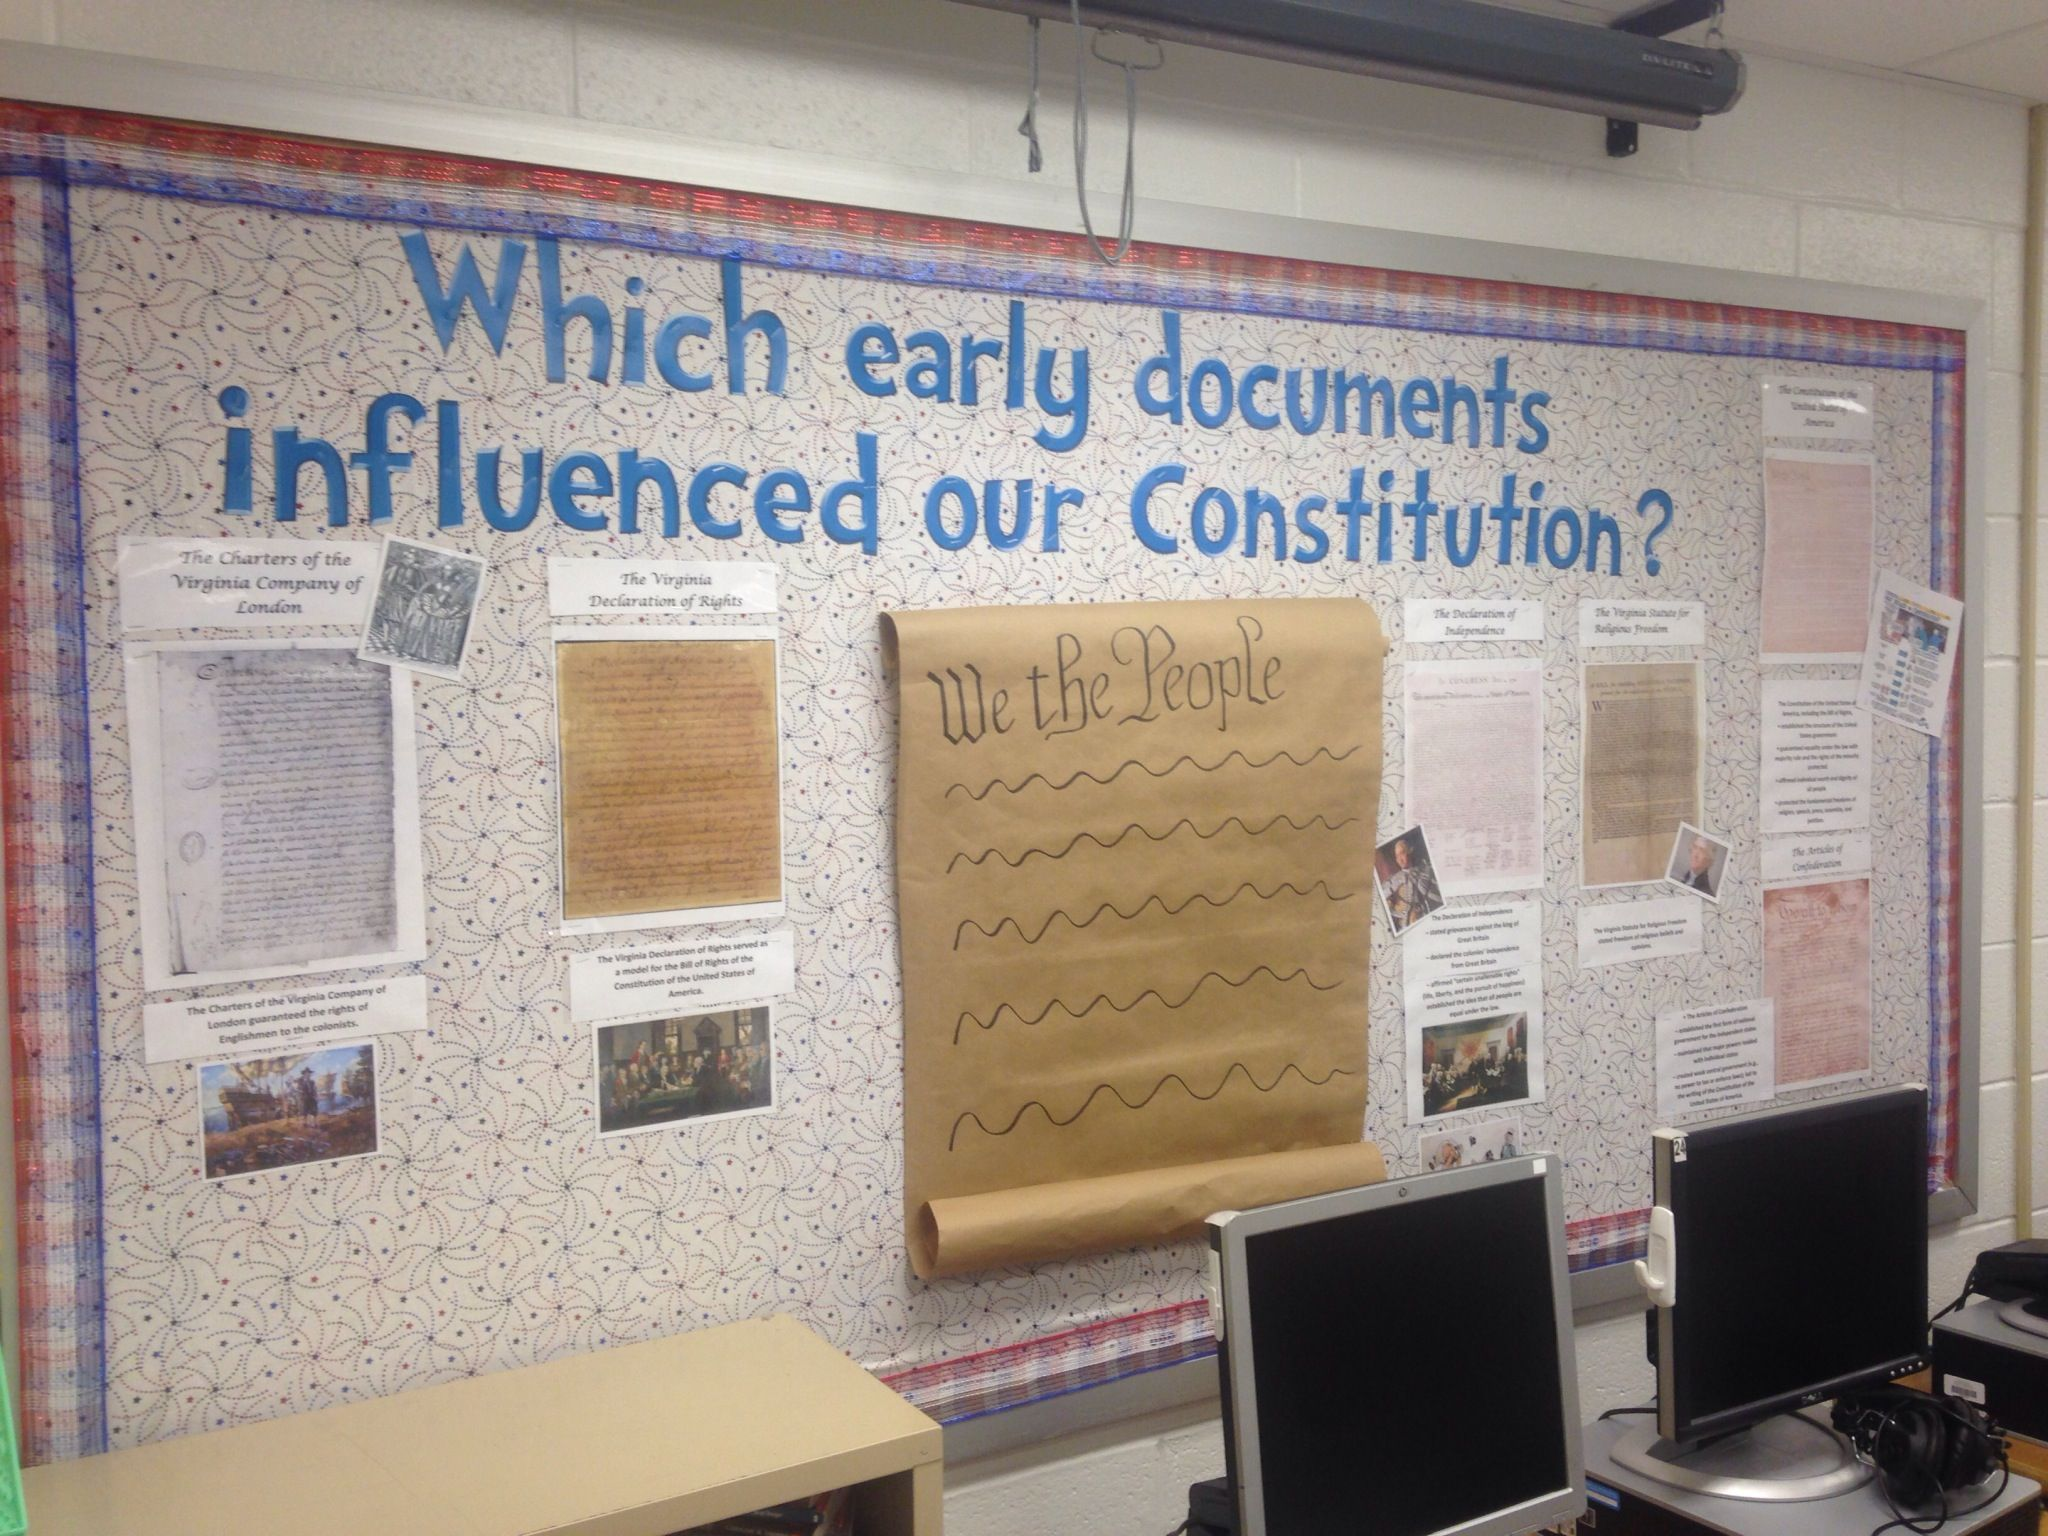 the major influence that shaped the constitution James madison was one of the major influences on the constitution he studied other ancient governments in order to prepare for the constitutional.